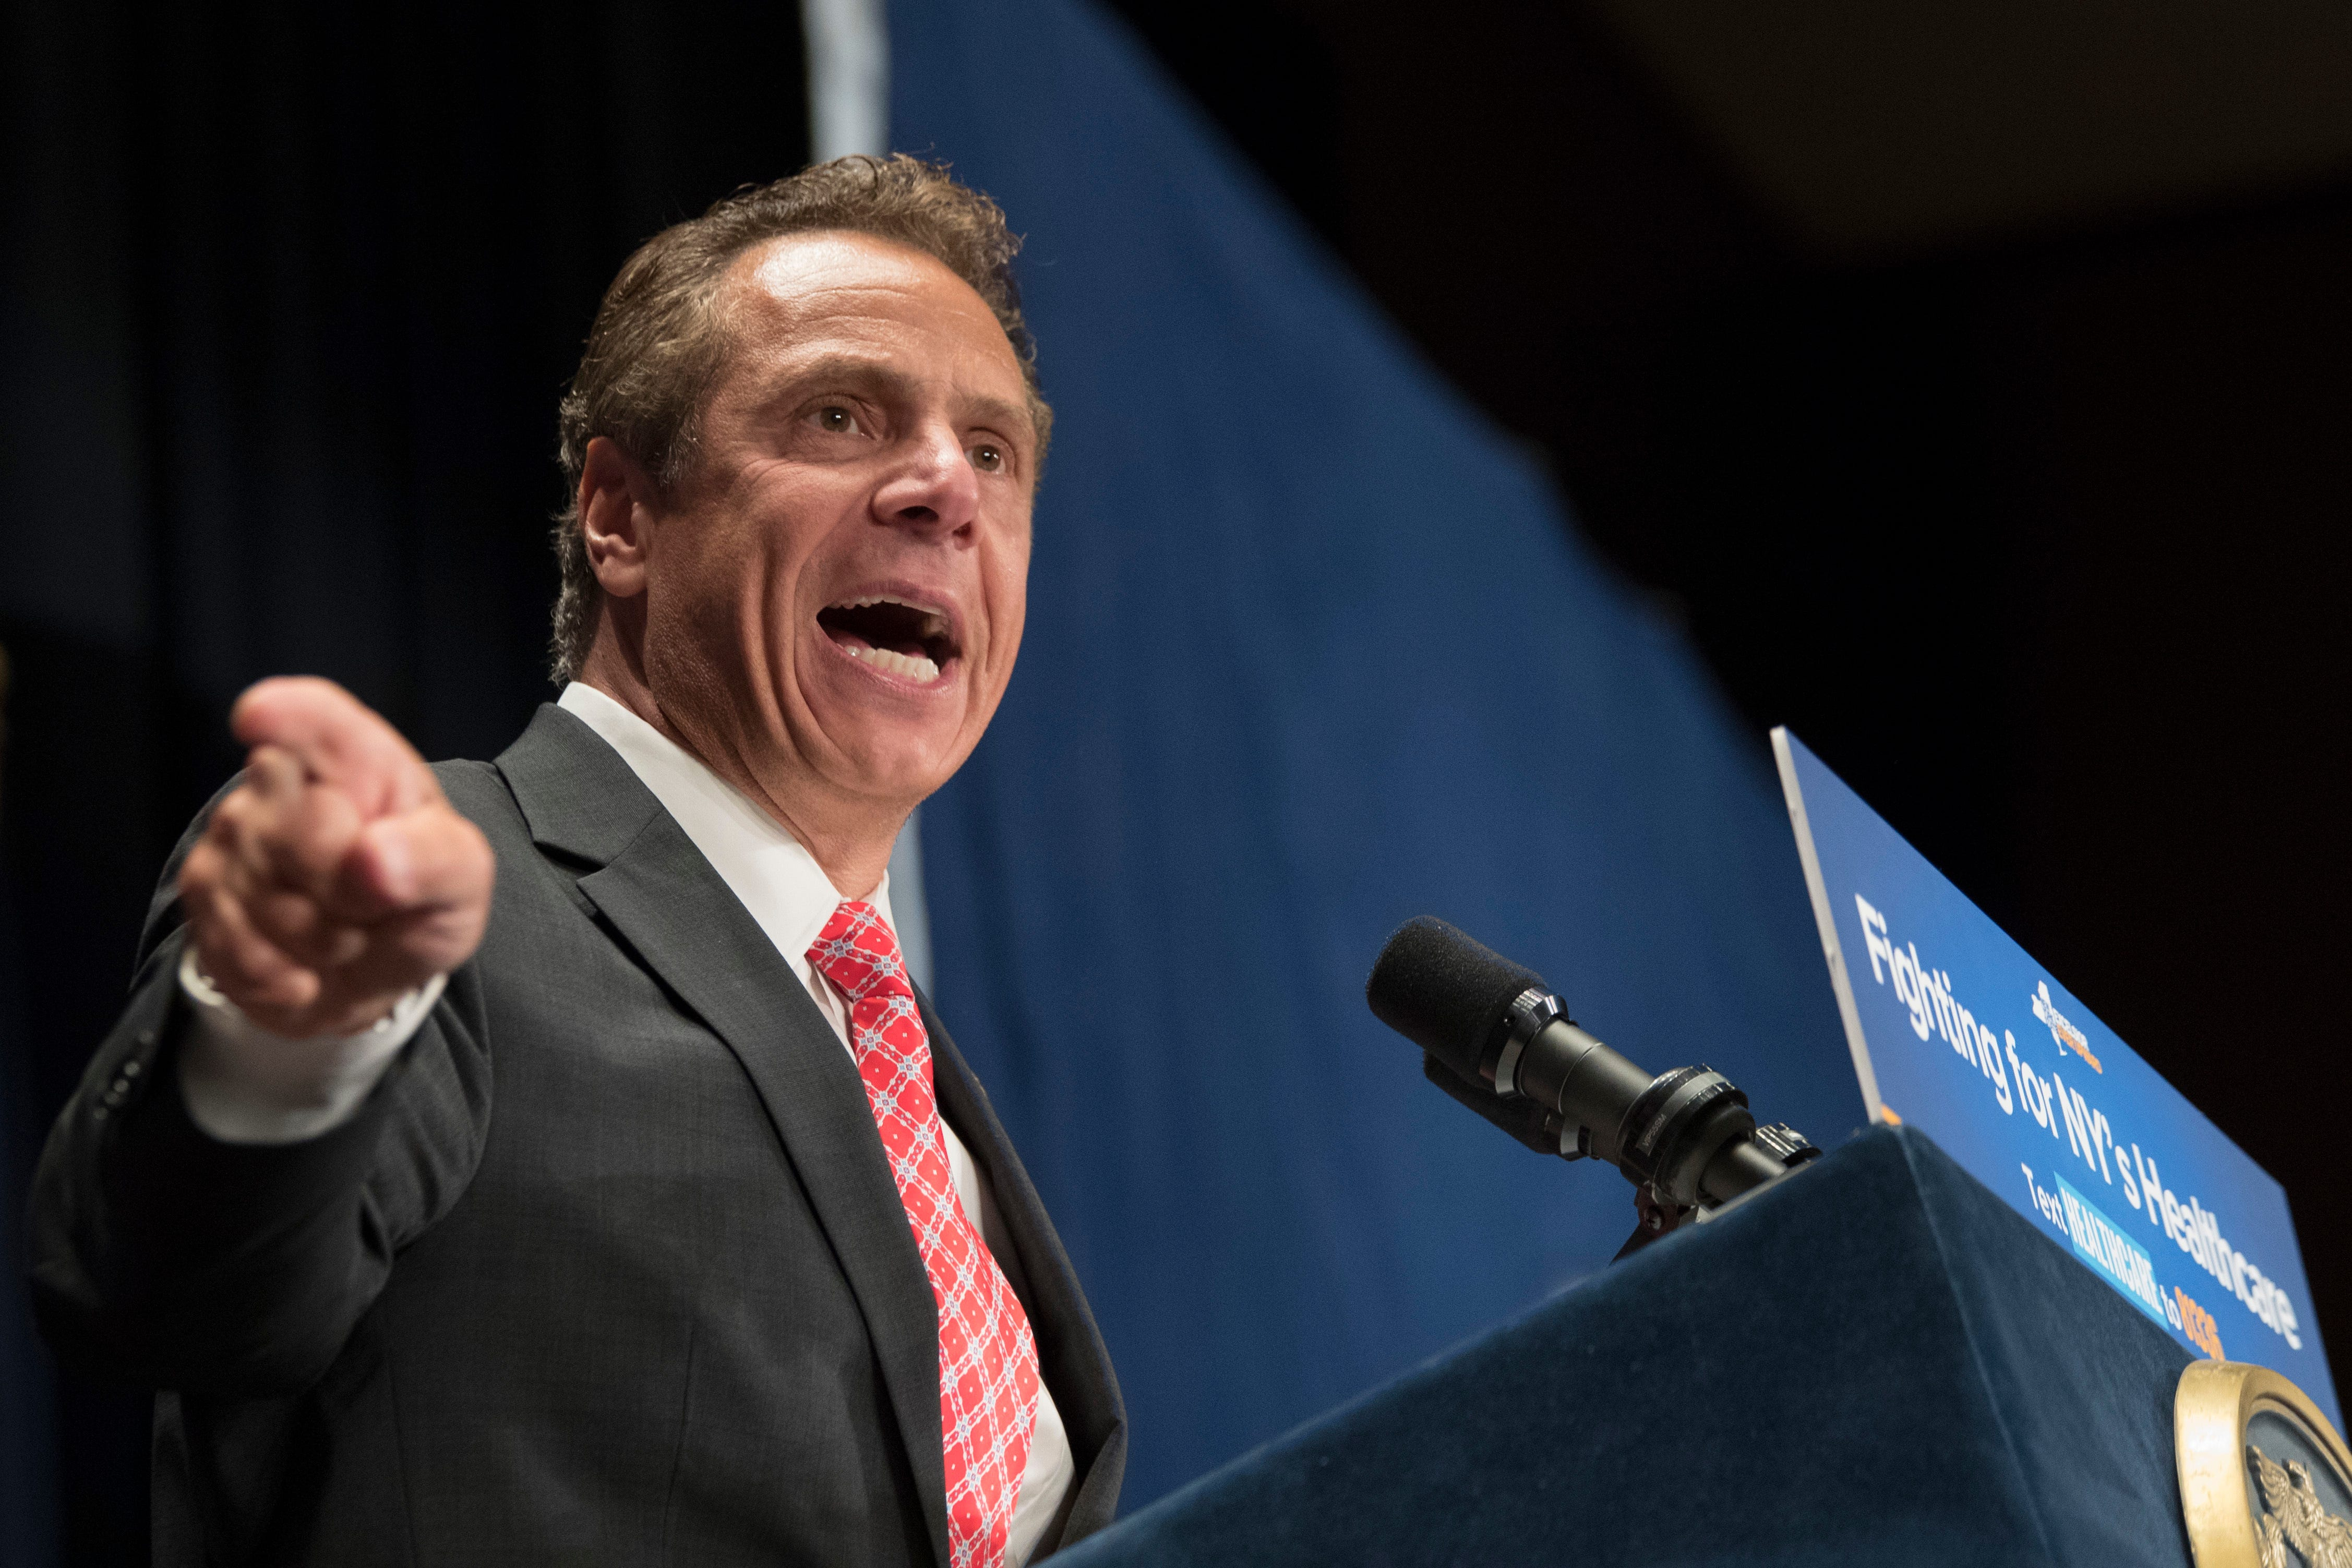 Cuomo: Female reporter's question on sex harassment was 'disservice to women'